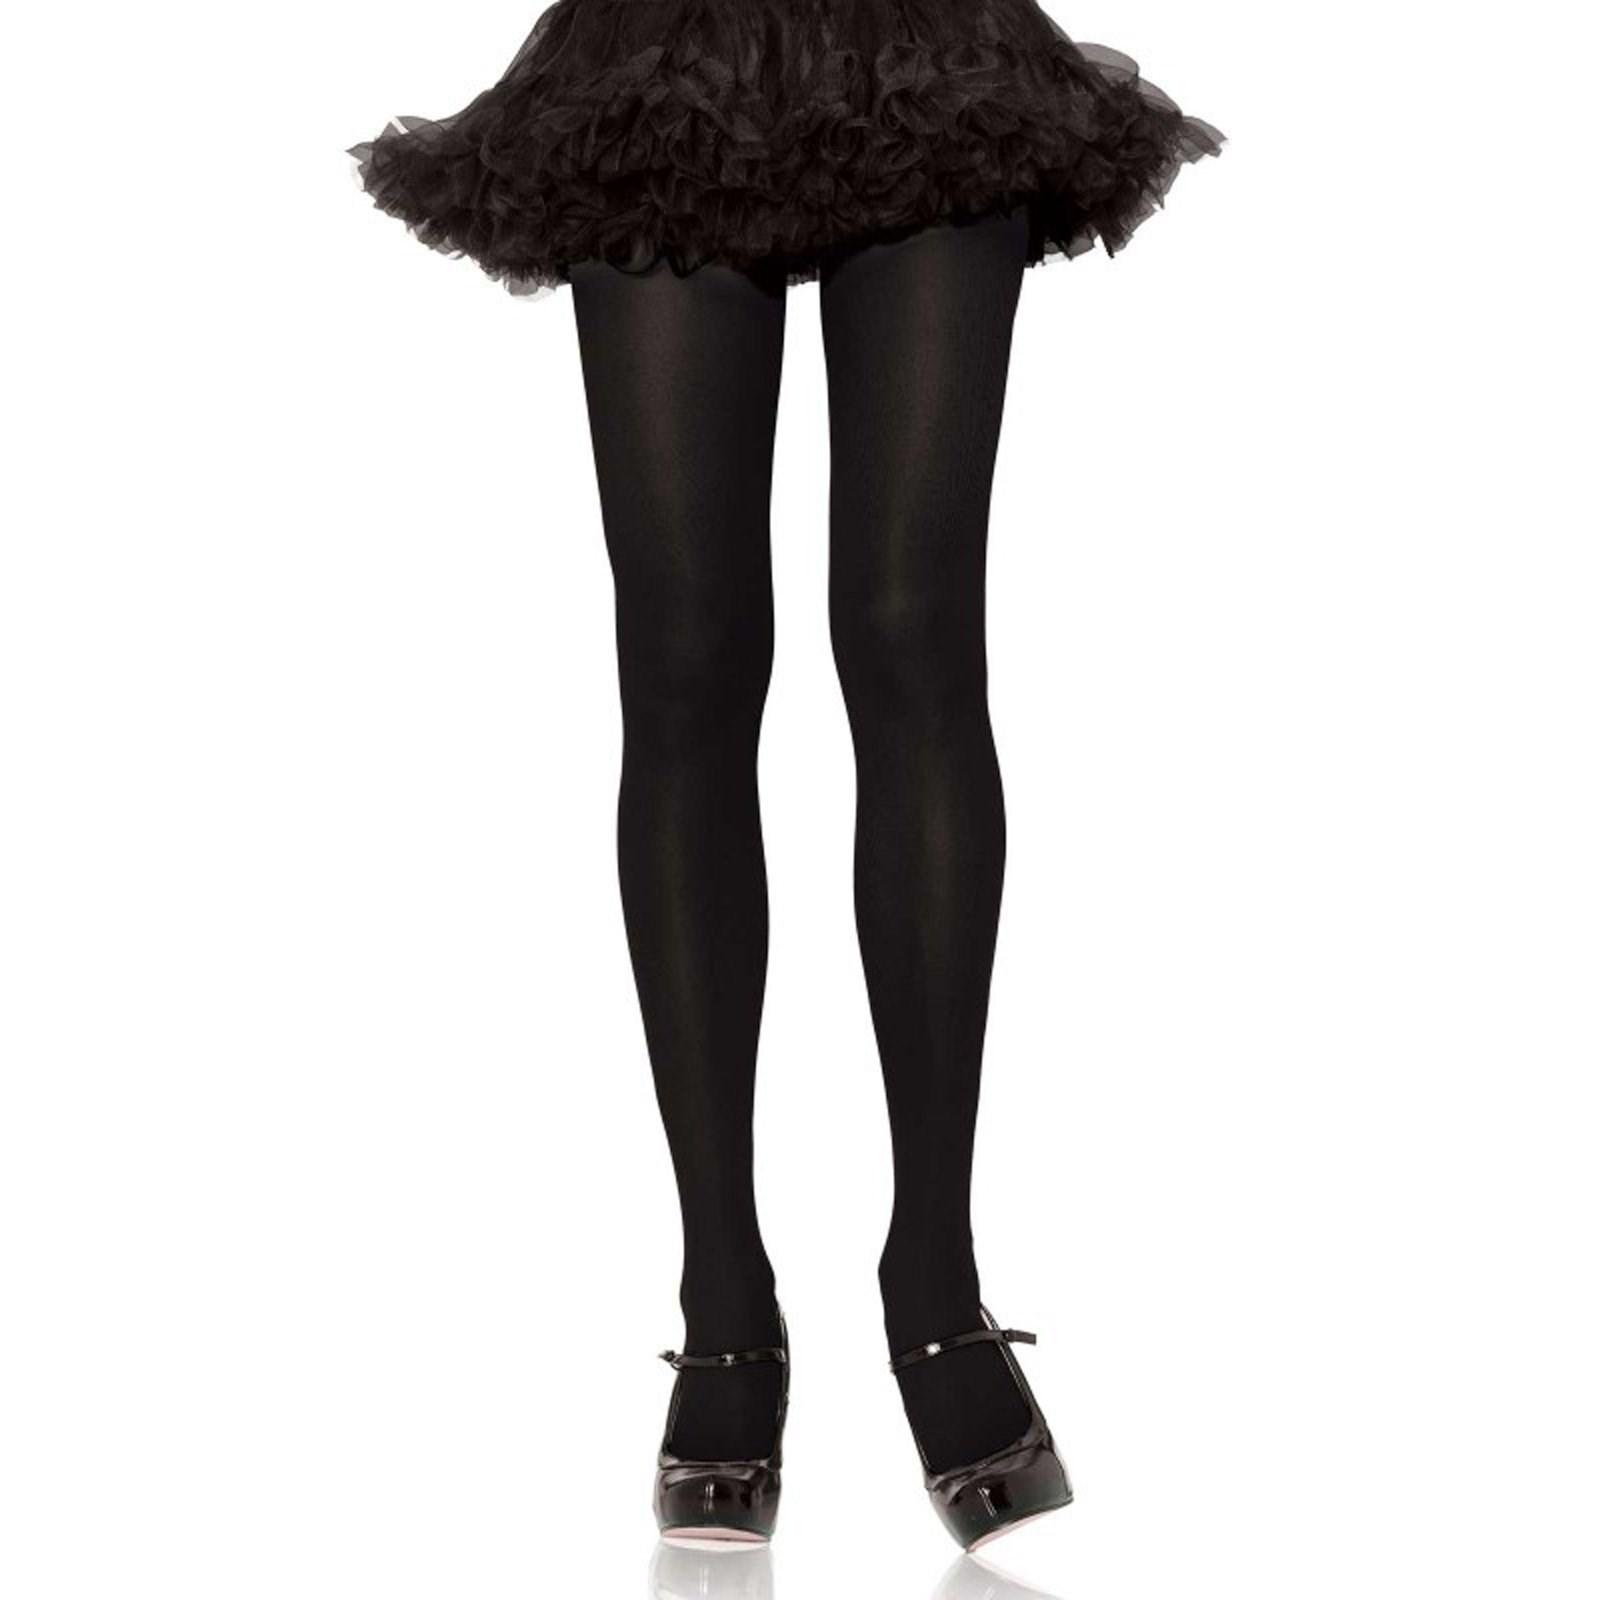 Image of Adult Nylon Tights - Clearance Colors